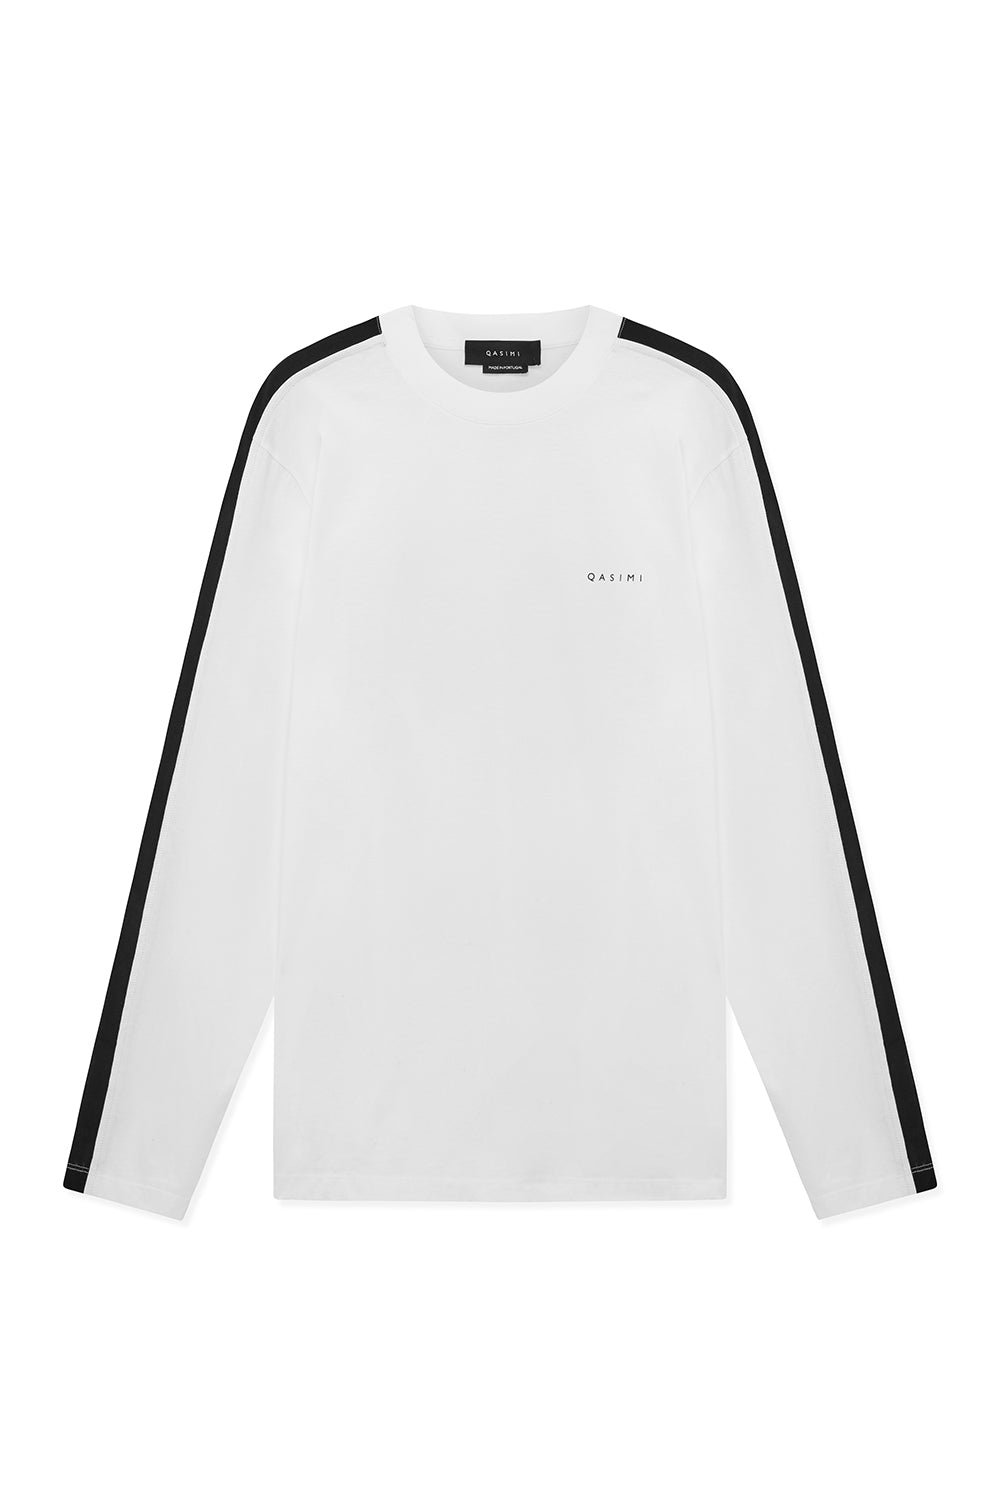 HA'ILA SINGLE JERSEY LONG SLEEVE T-SHIRT